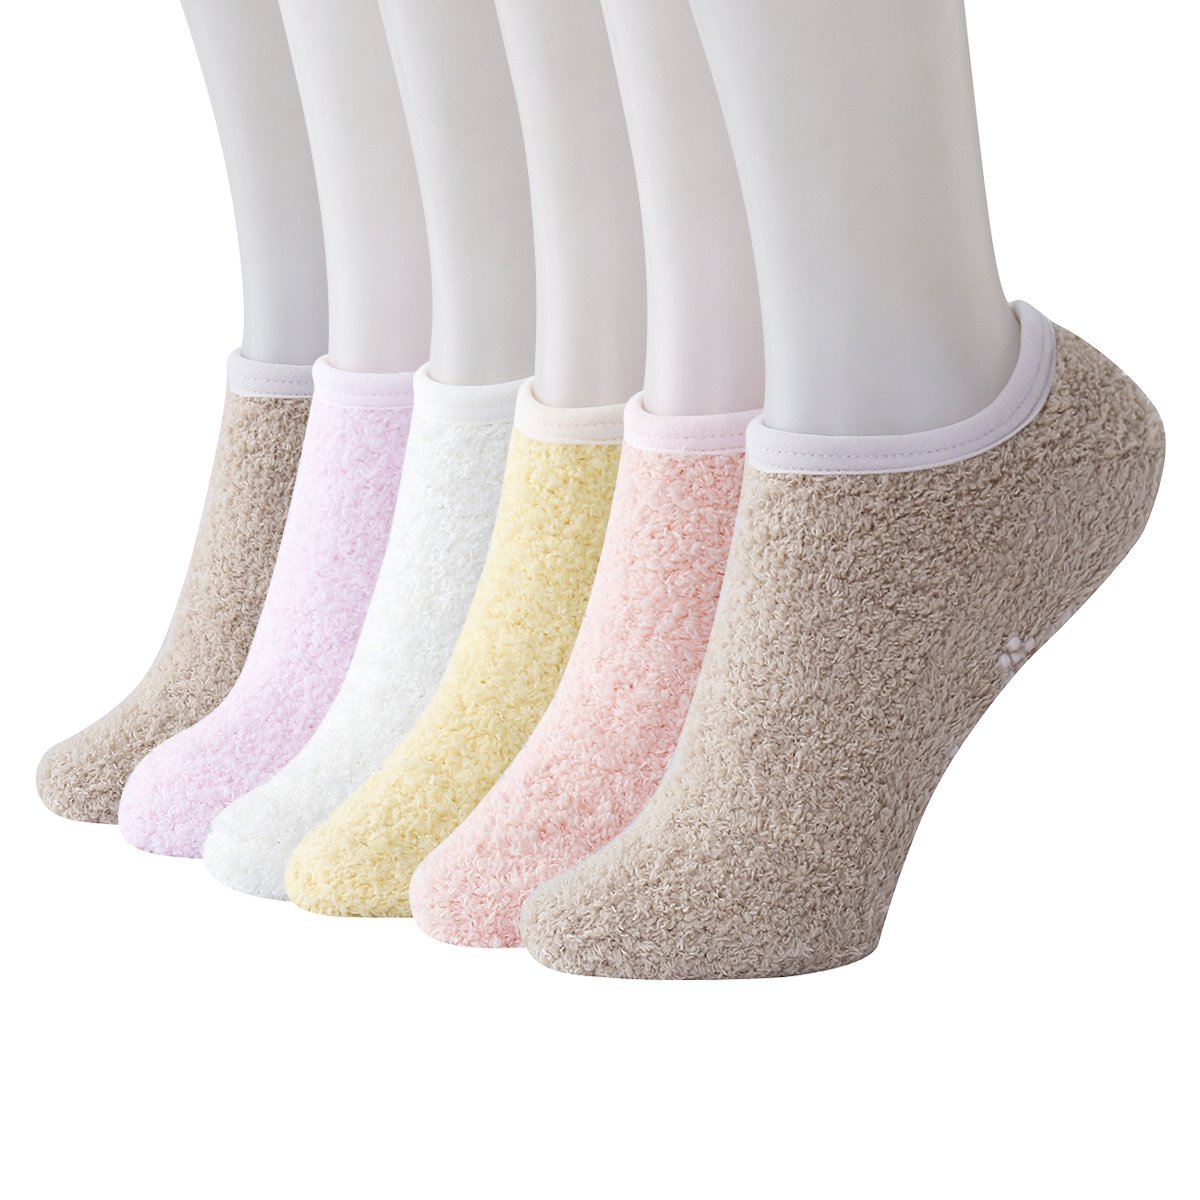 Beauttable 6 Pack Women Solid Colorful Indoors Soft Anti-Slip Winter Fluffy Fuzzy Slipper Socks